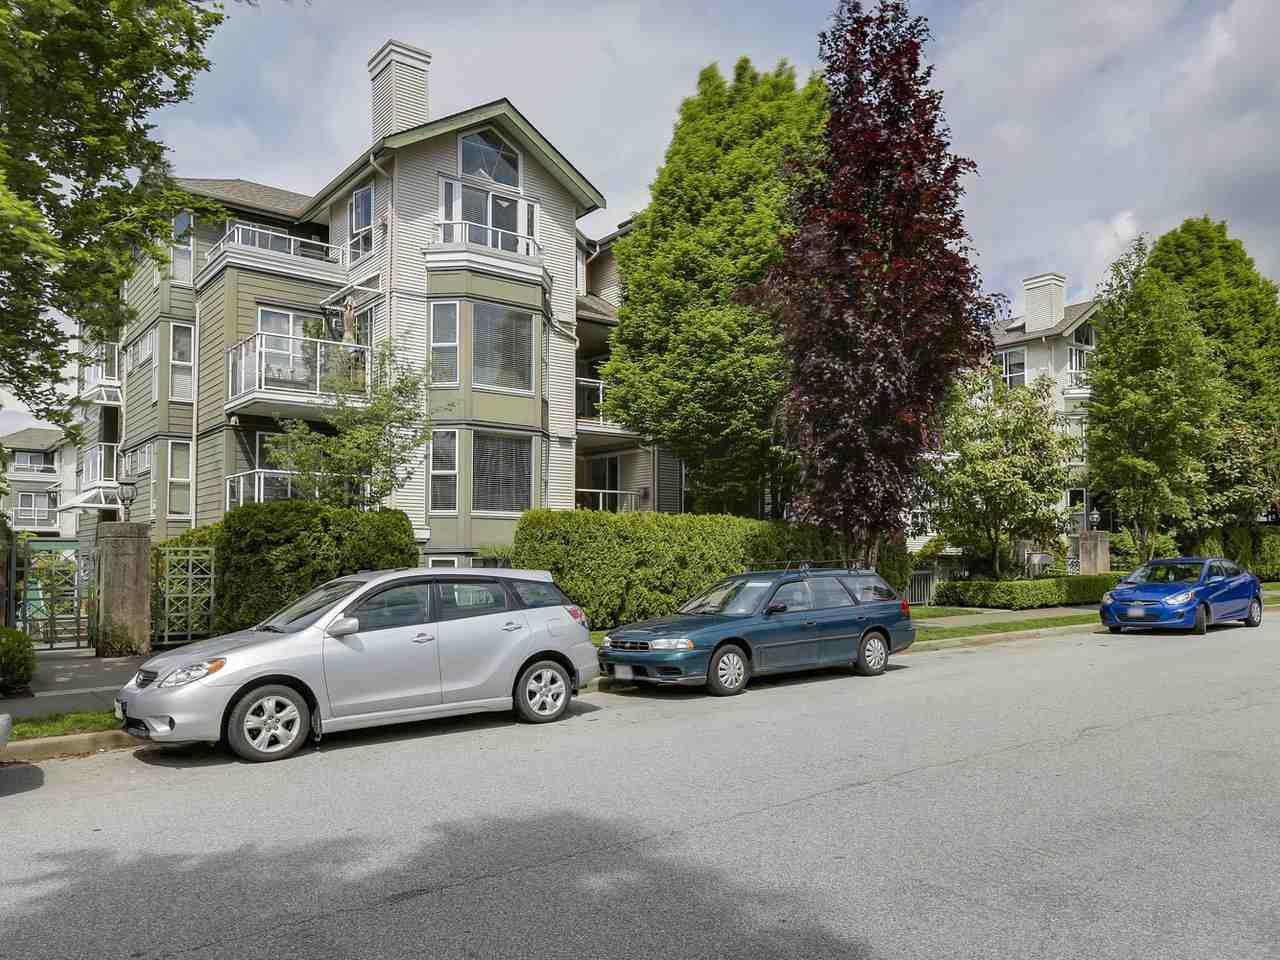 Main Photo: 305 225 E 19TH AVENUE in Vancouver: Main Condo for sale (Vancouver East)  : MLS®# R2173702